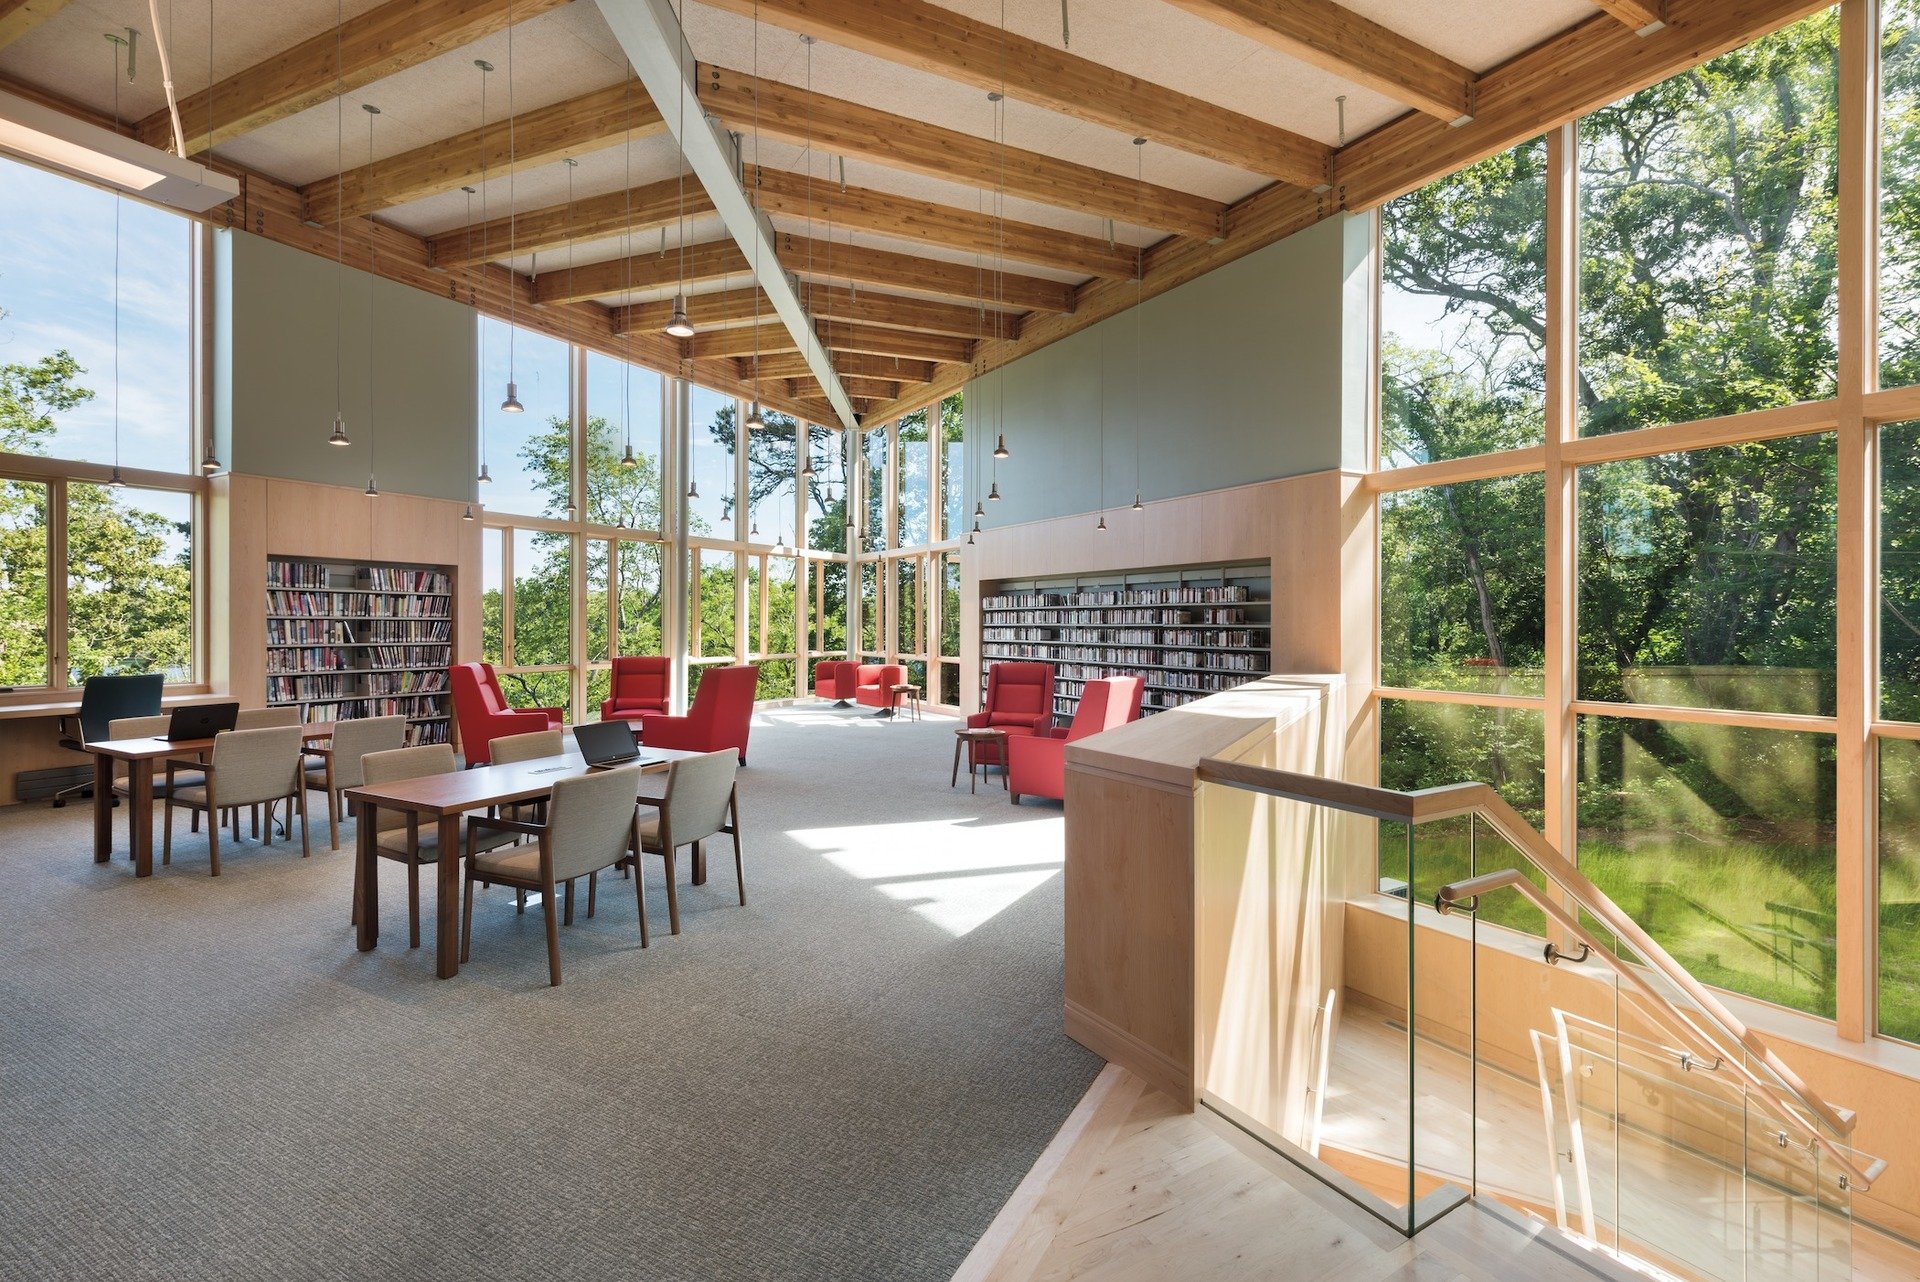 The naturally lit library common area promotes a healthy environment for guests to read, work, and gather. The Eastham Public Library features Architect Series® Traditional windows by Pella.